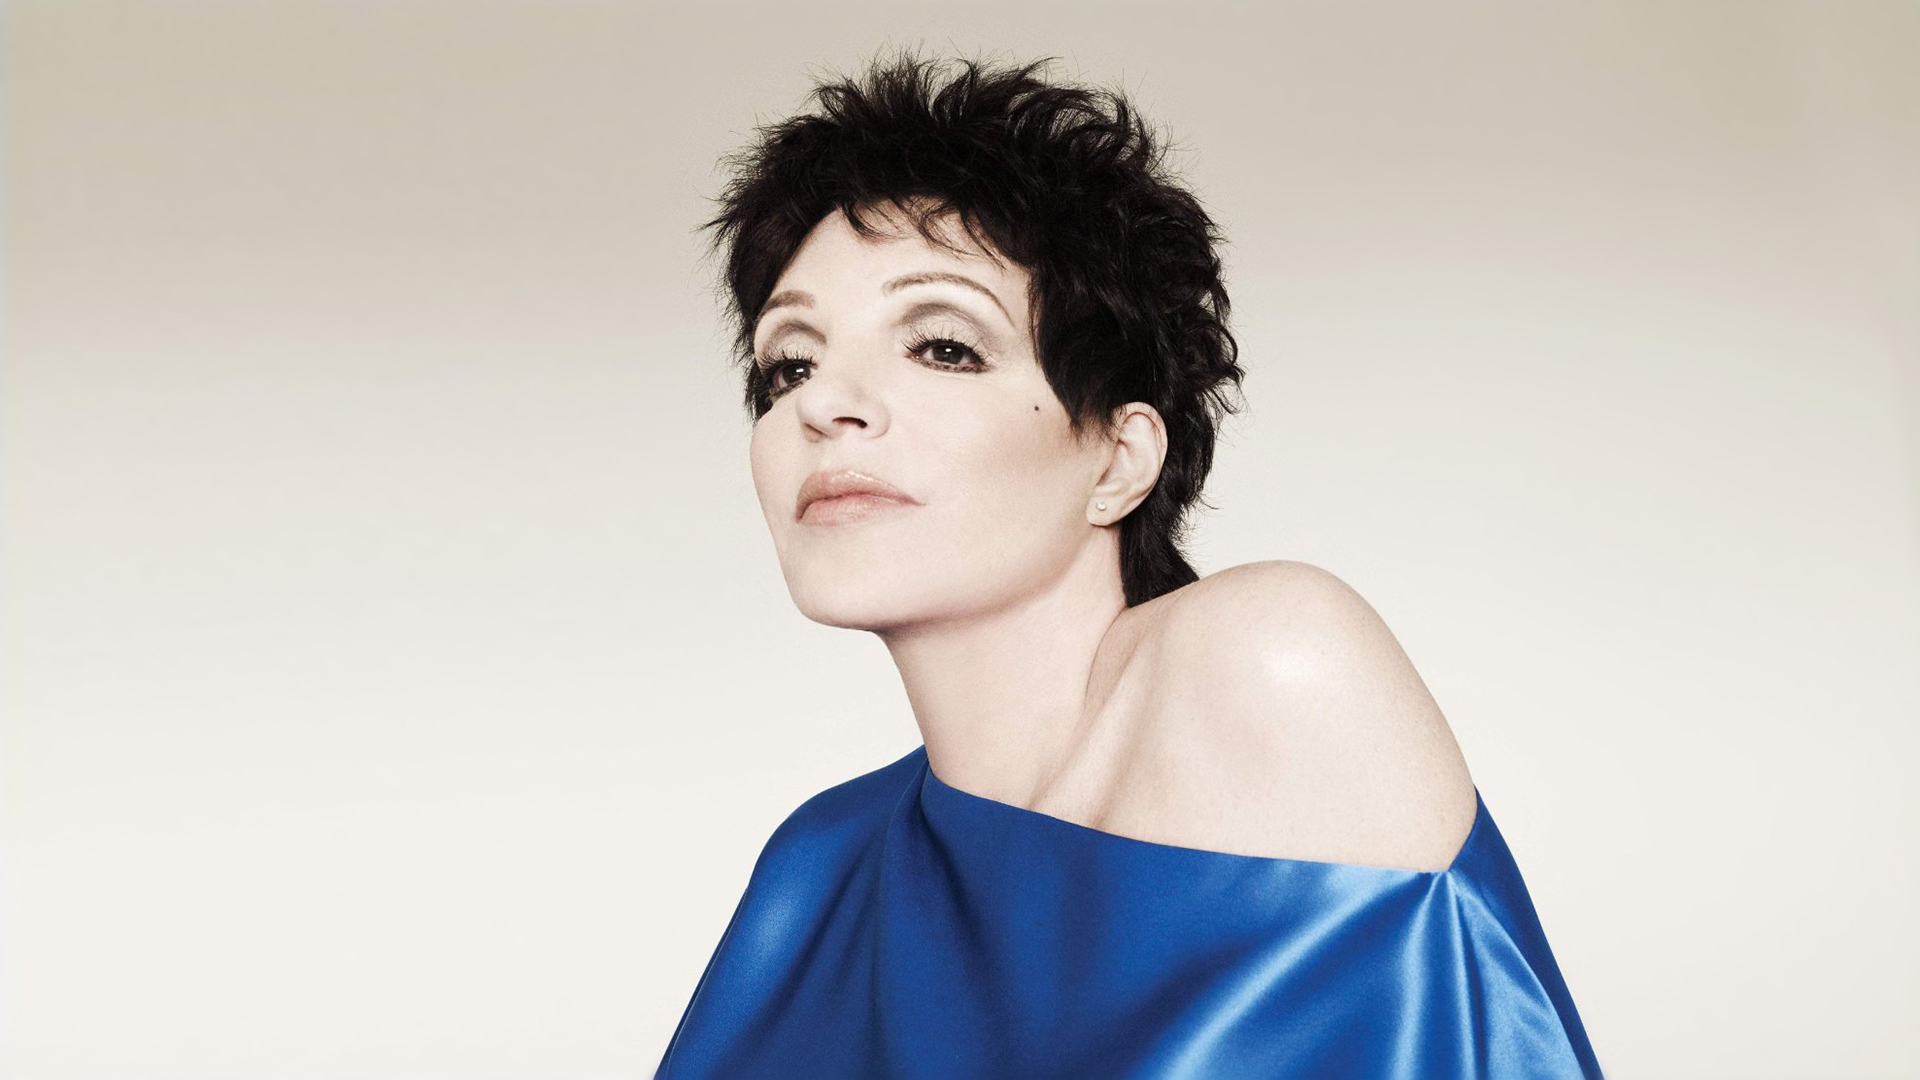 Liza Minnelli Archives - HDWallSource.com - HDWallSource.com